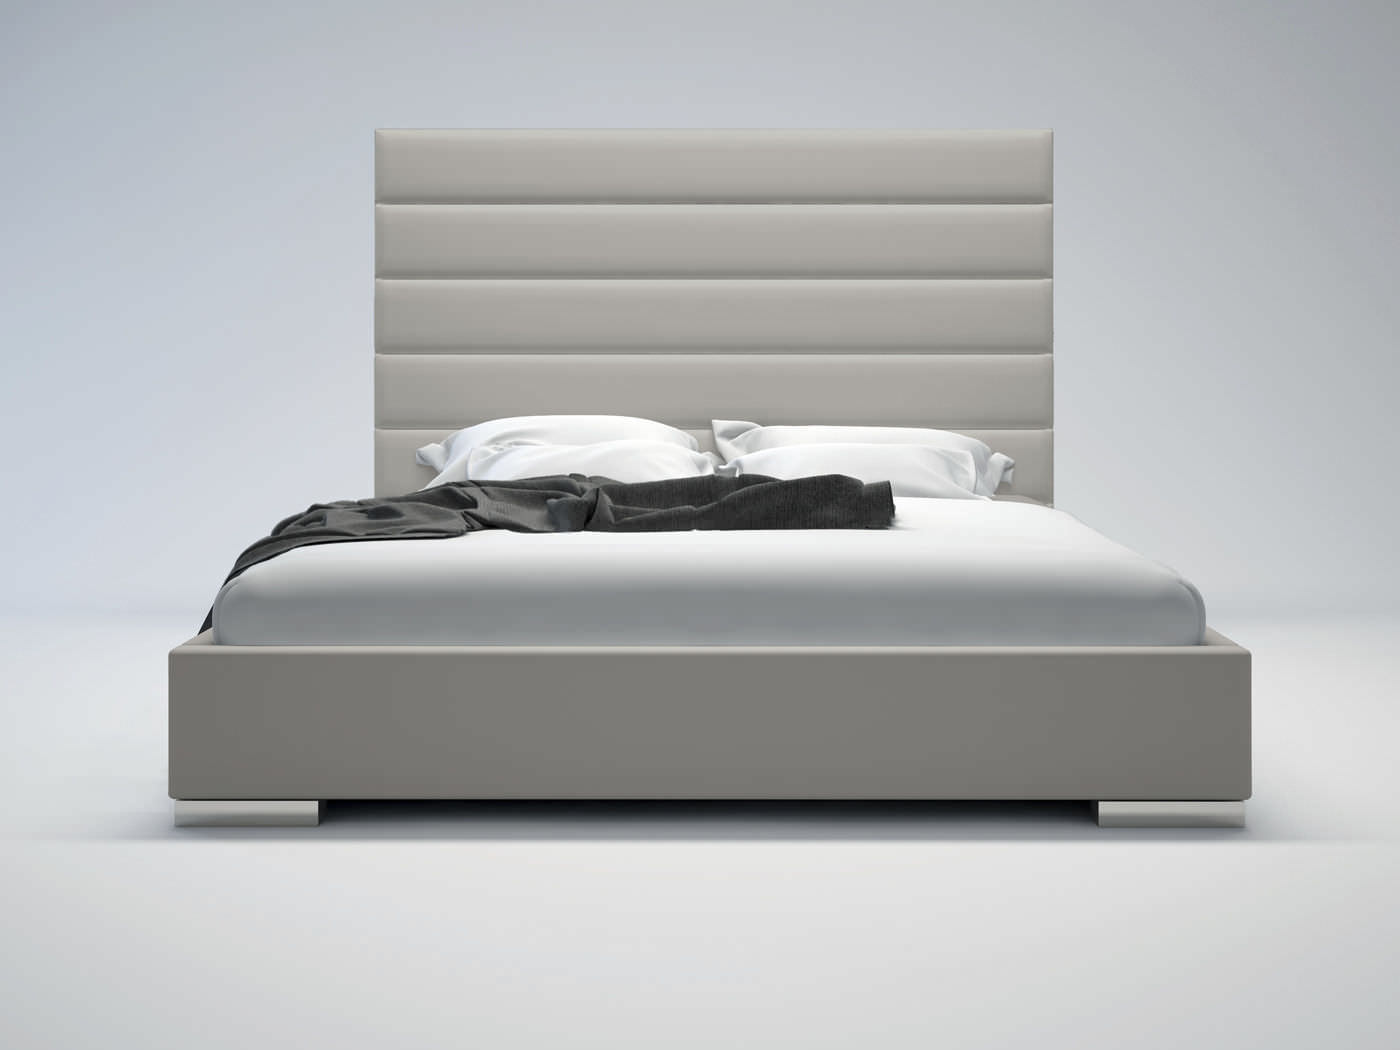 Bed headboard leather - Double Bed Leather With Upholstered Headboard